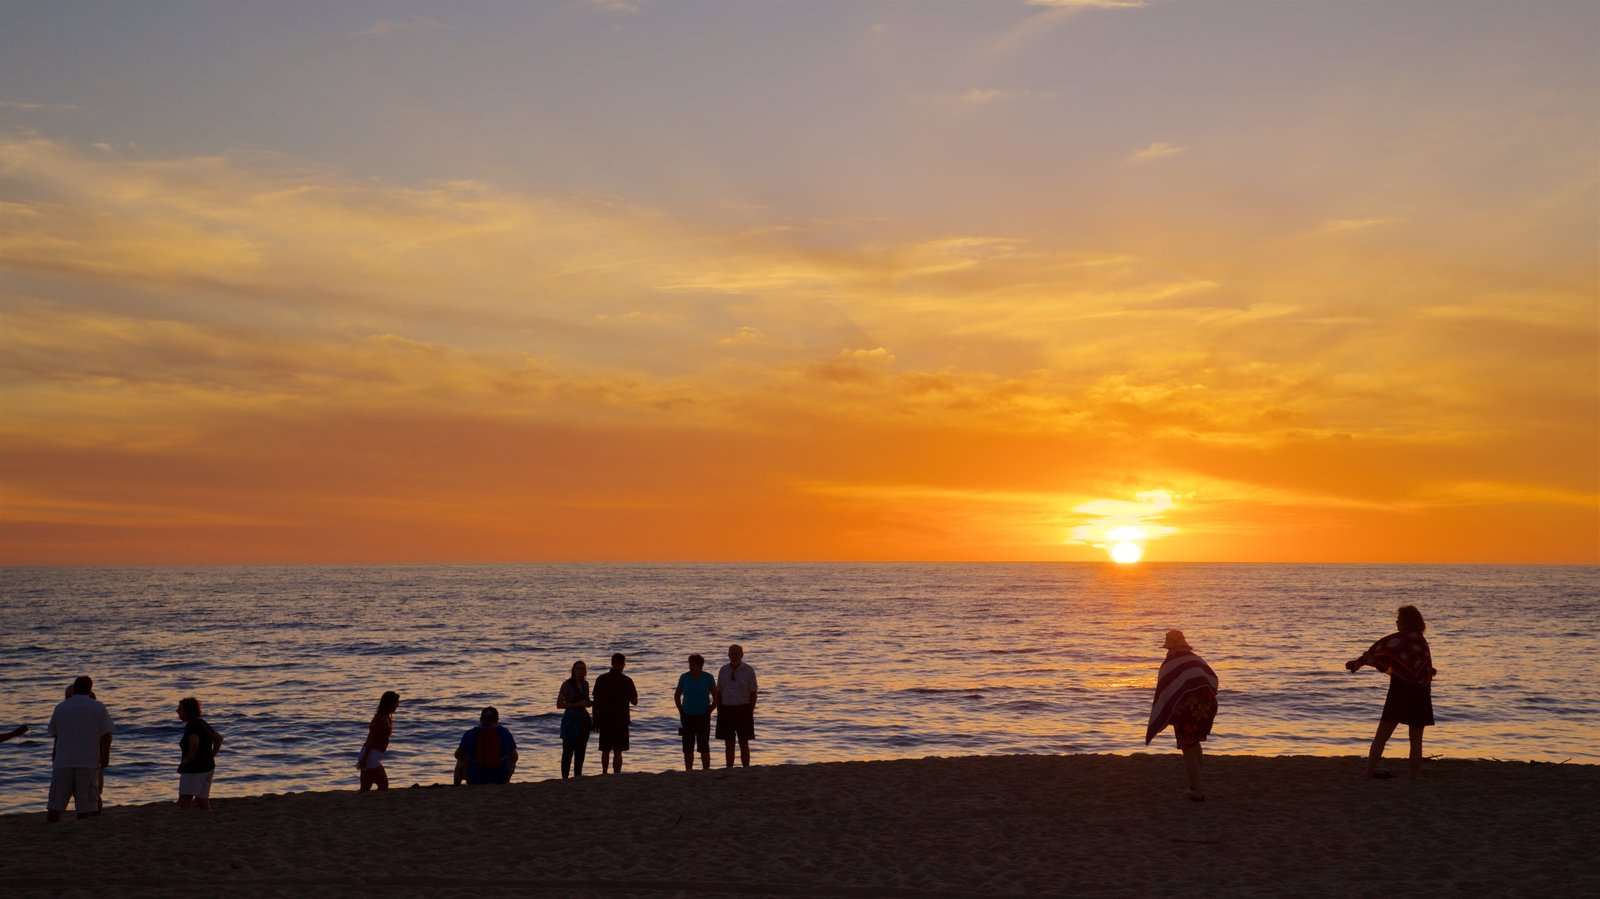 Todos Santos which includes general coastal views and a sunset as well as a small group of people